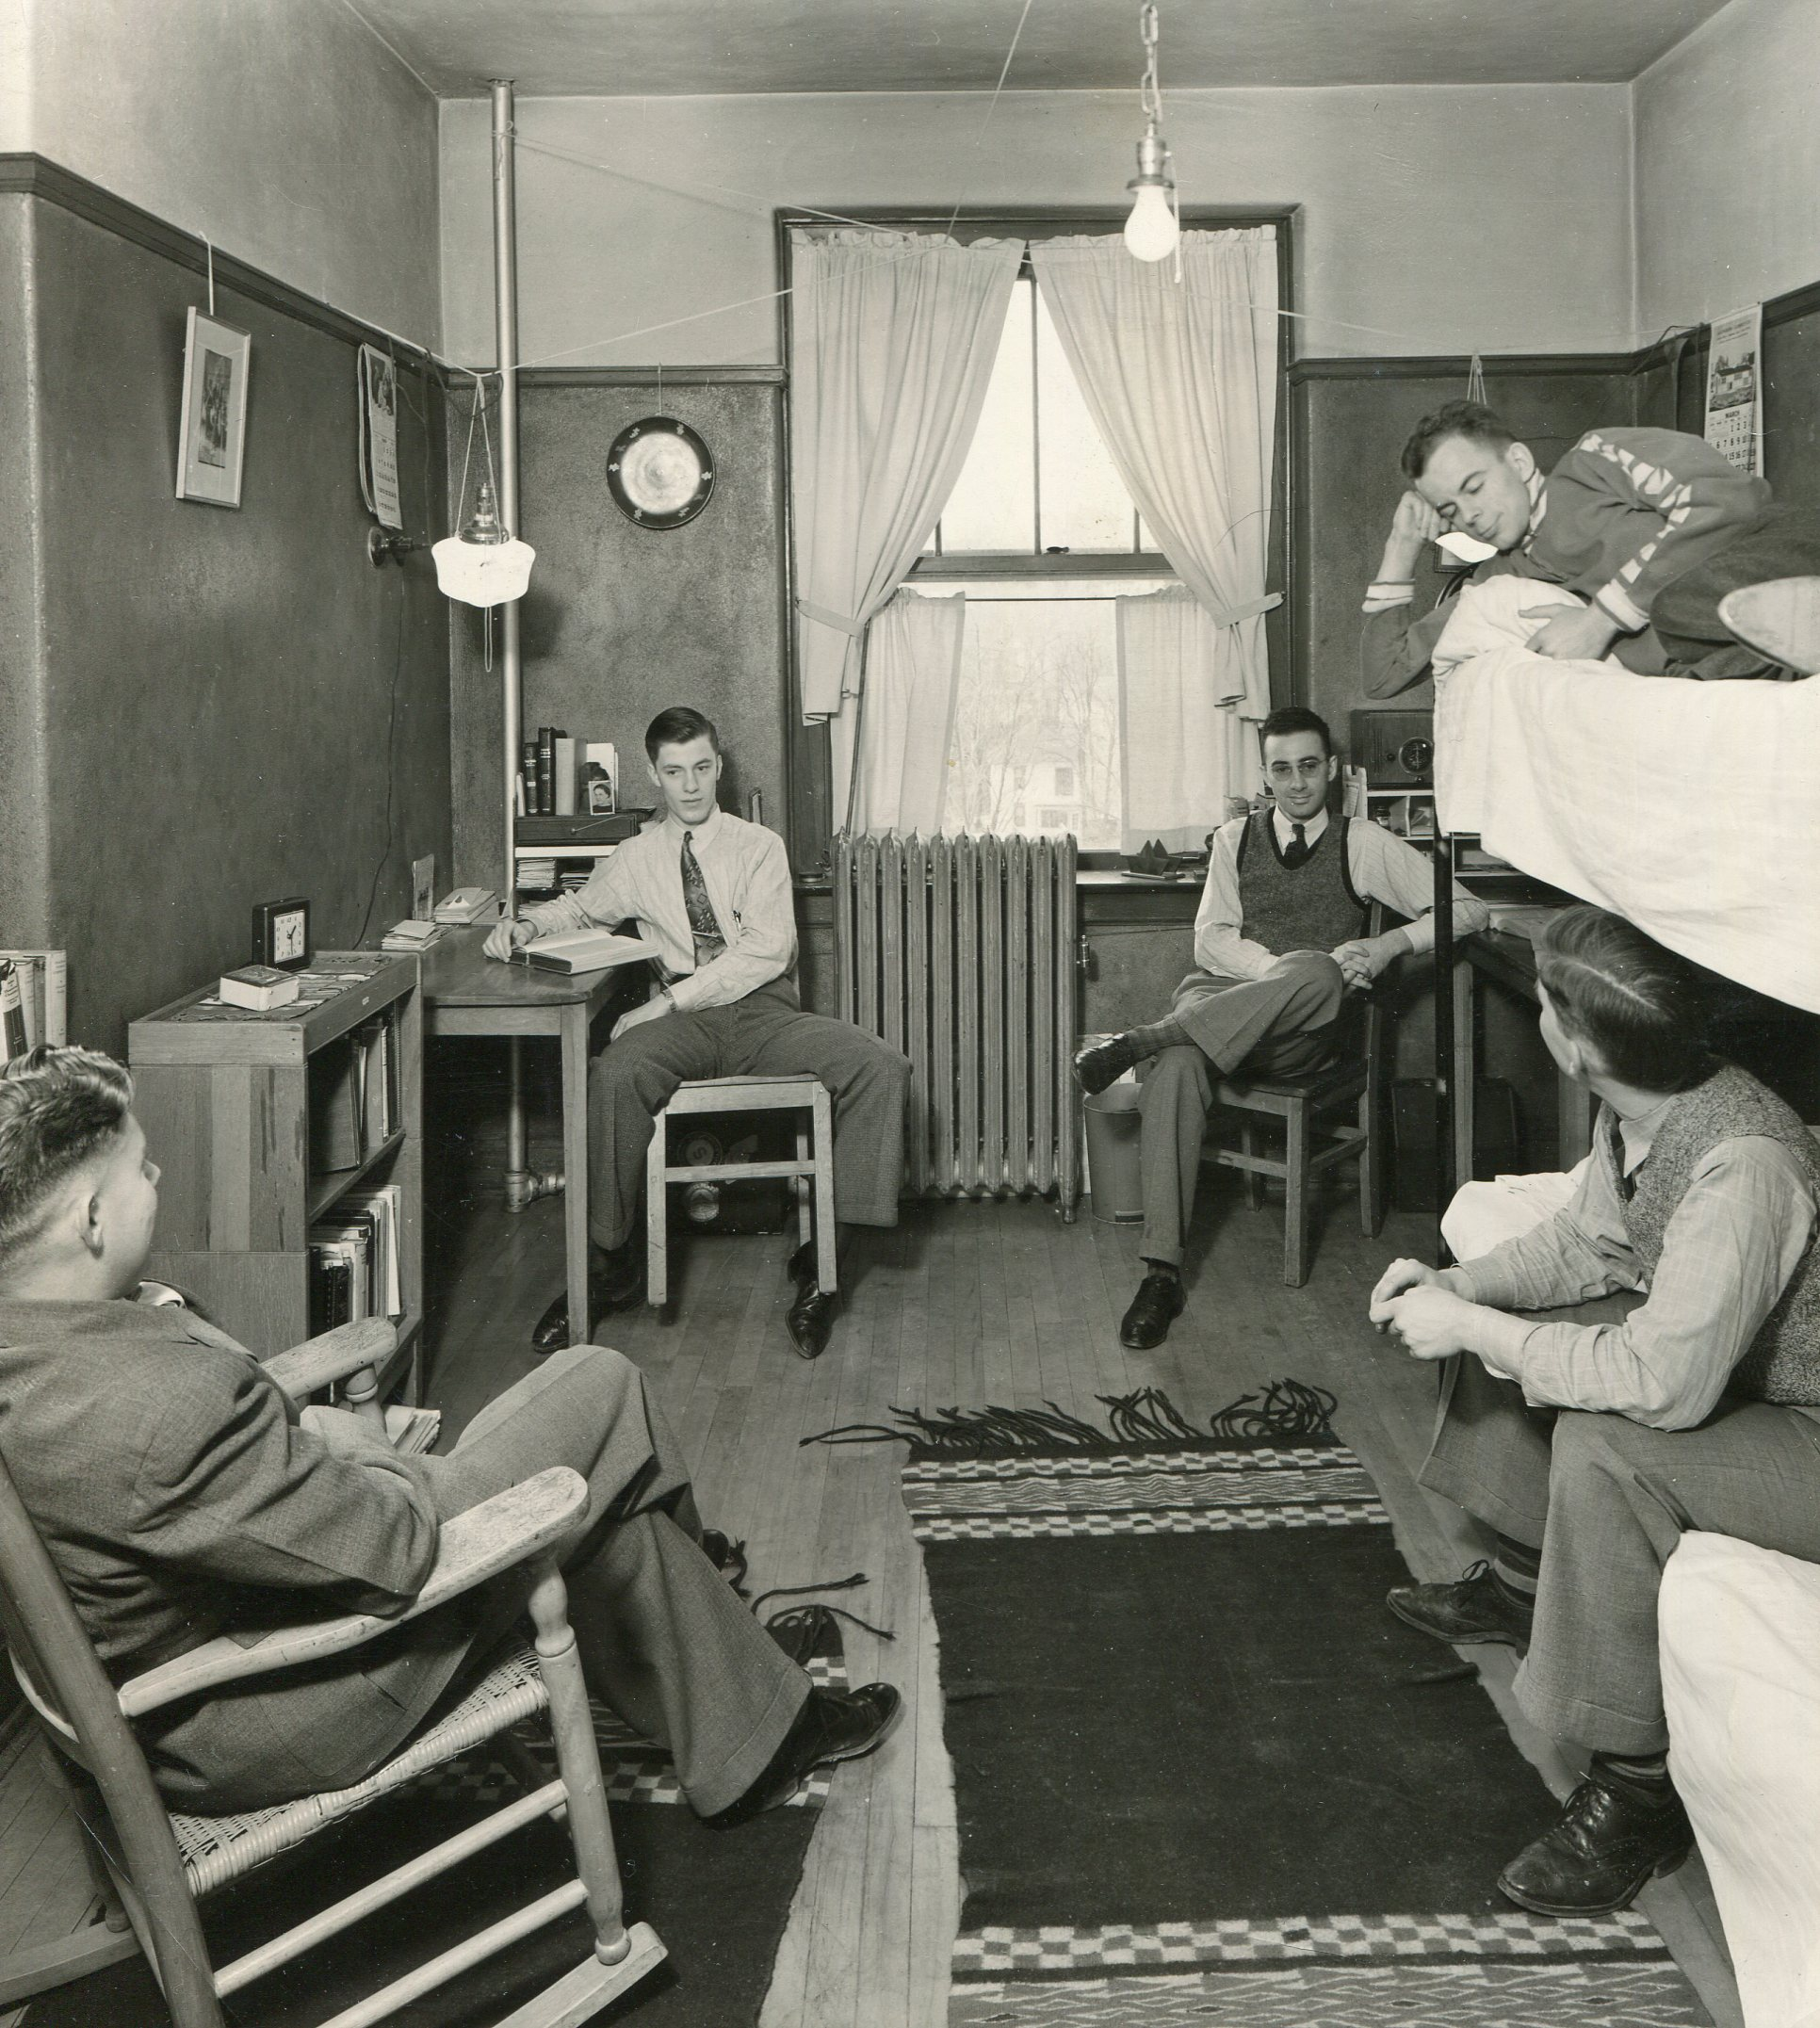 A dorm room for the new Copley-Thaw Hall